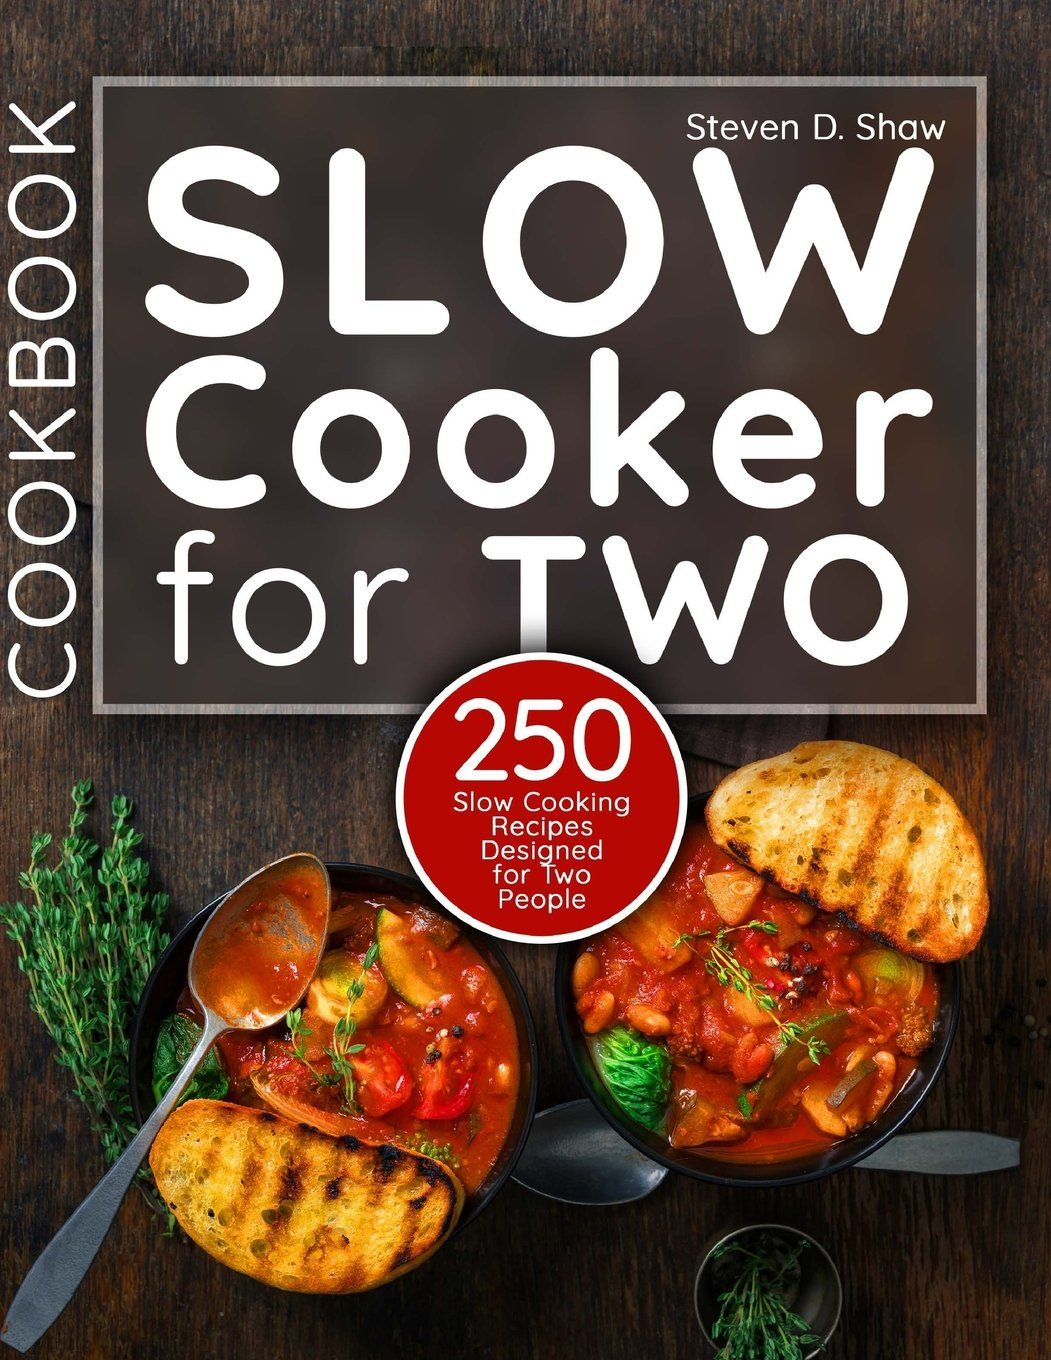 Slow Cooker Cookbook For Two 250 Slow Cooking Recipes Designed For Two People Cooking Recipes Healthy Bedtime Snacks Slow Cooker Recipes